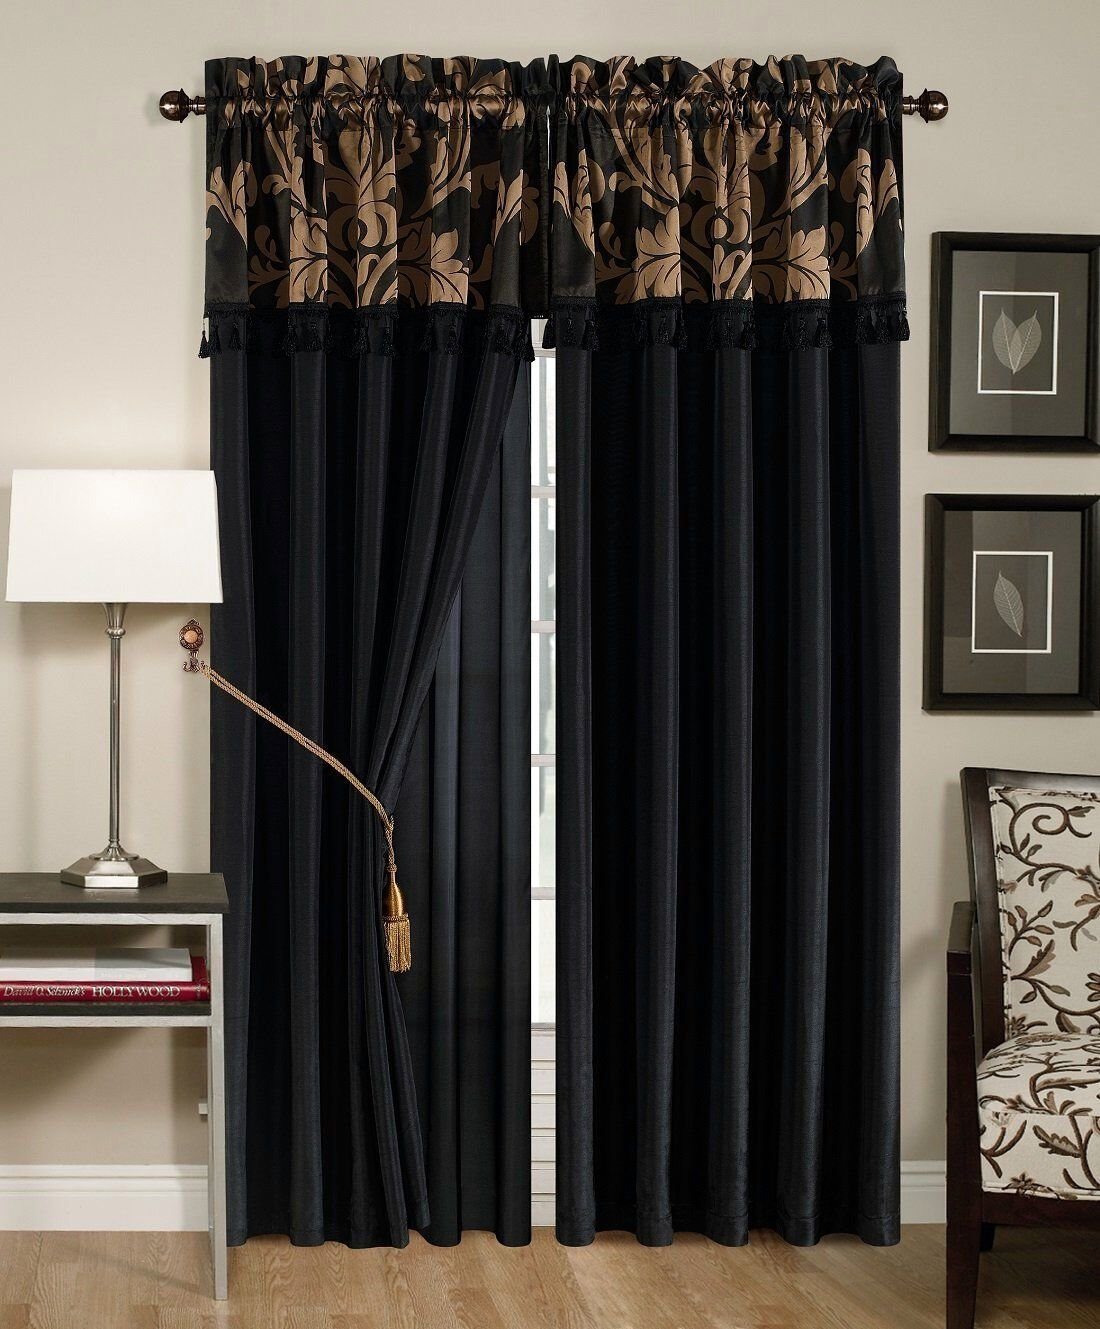 Best 4 Pc Floral Window Curtain Set Bedroom Drape Valance Panel With Pictures